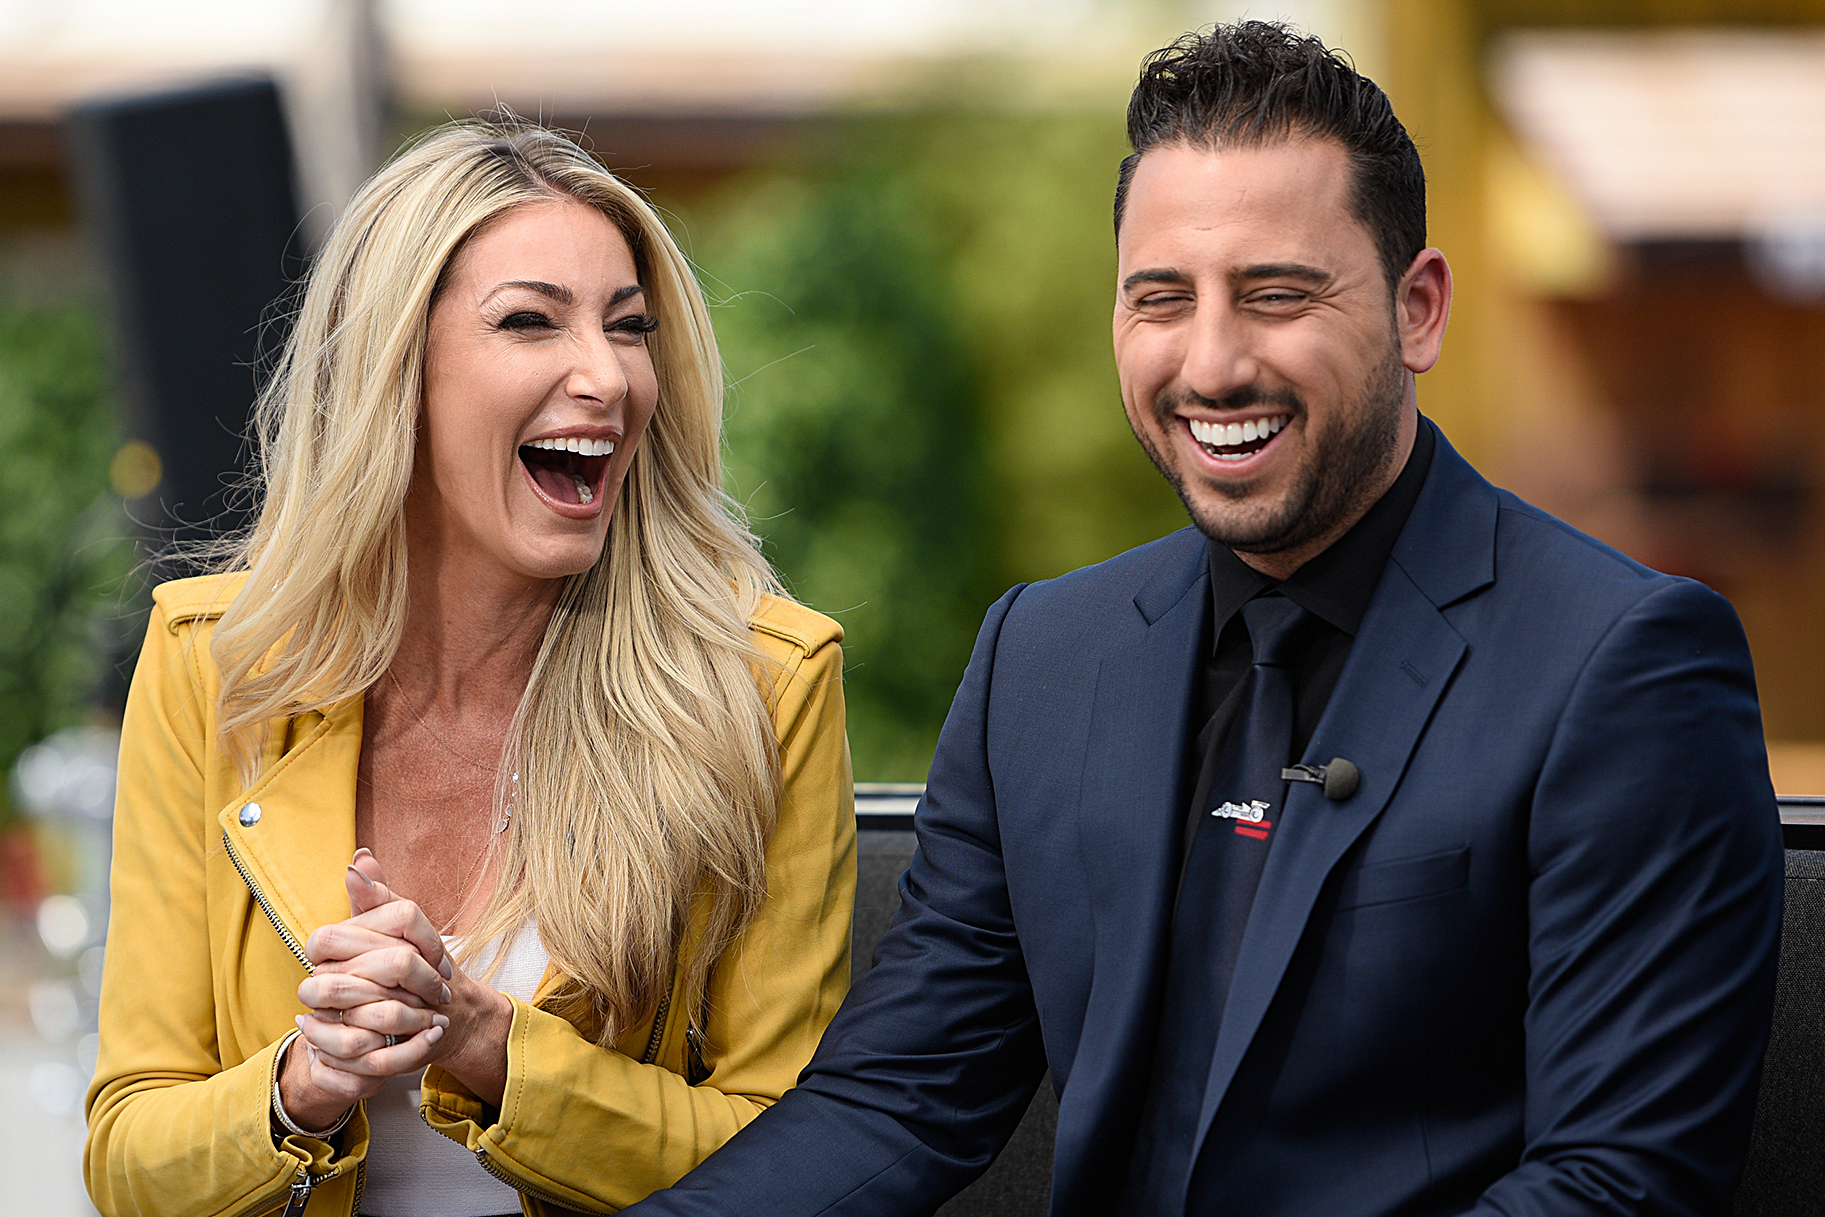 Josh Altman Heather Swimming Pool